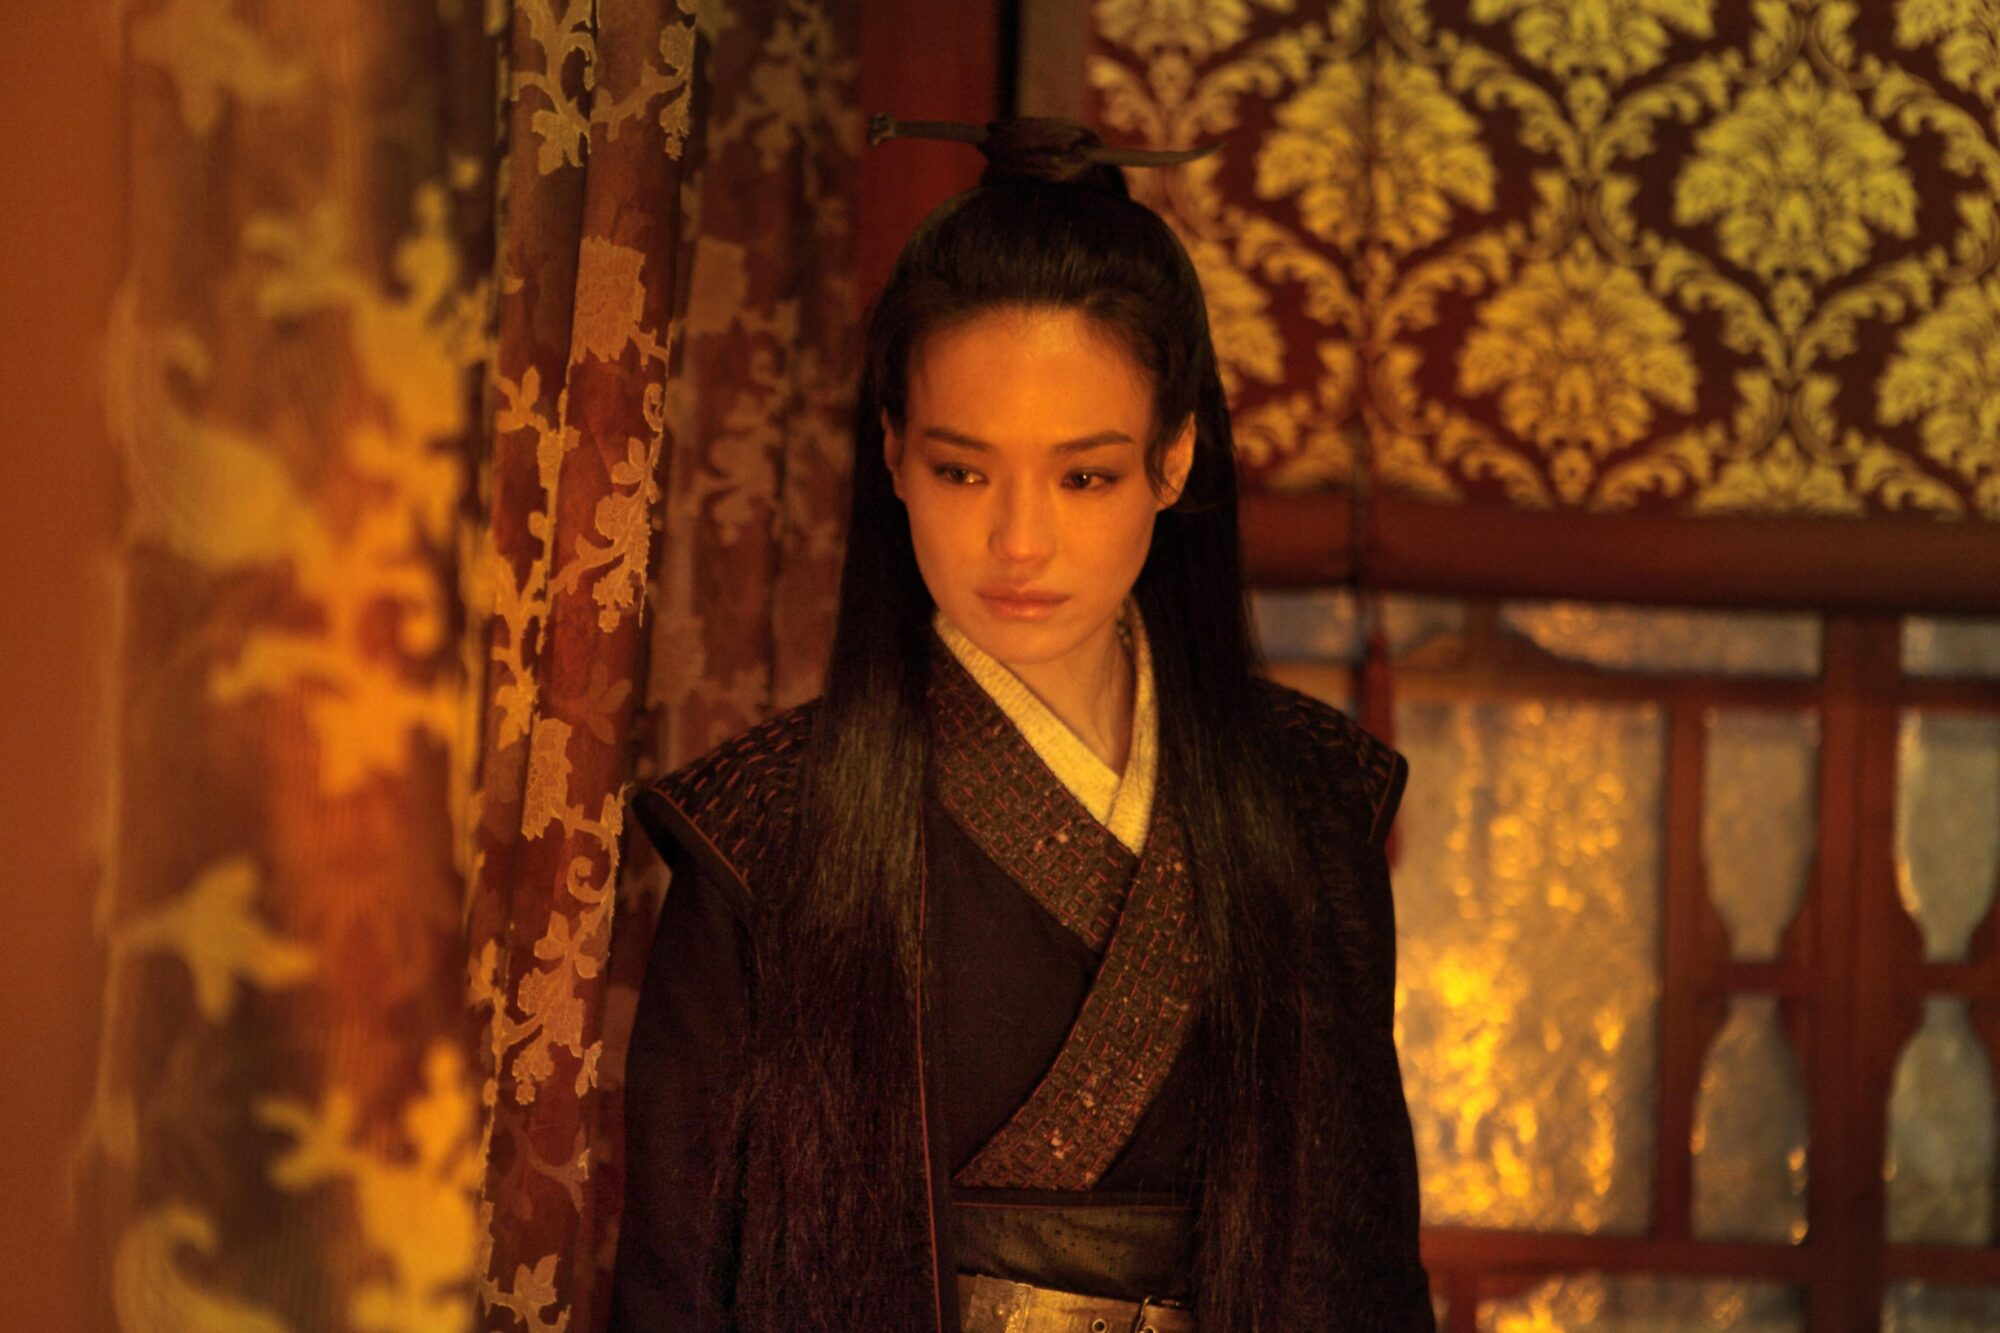 Cannes Film Festival 2015: The Assassin